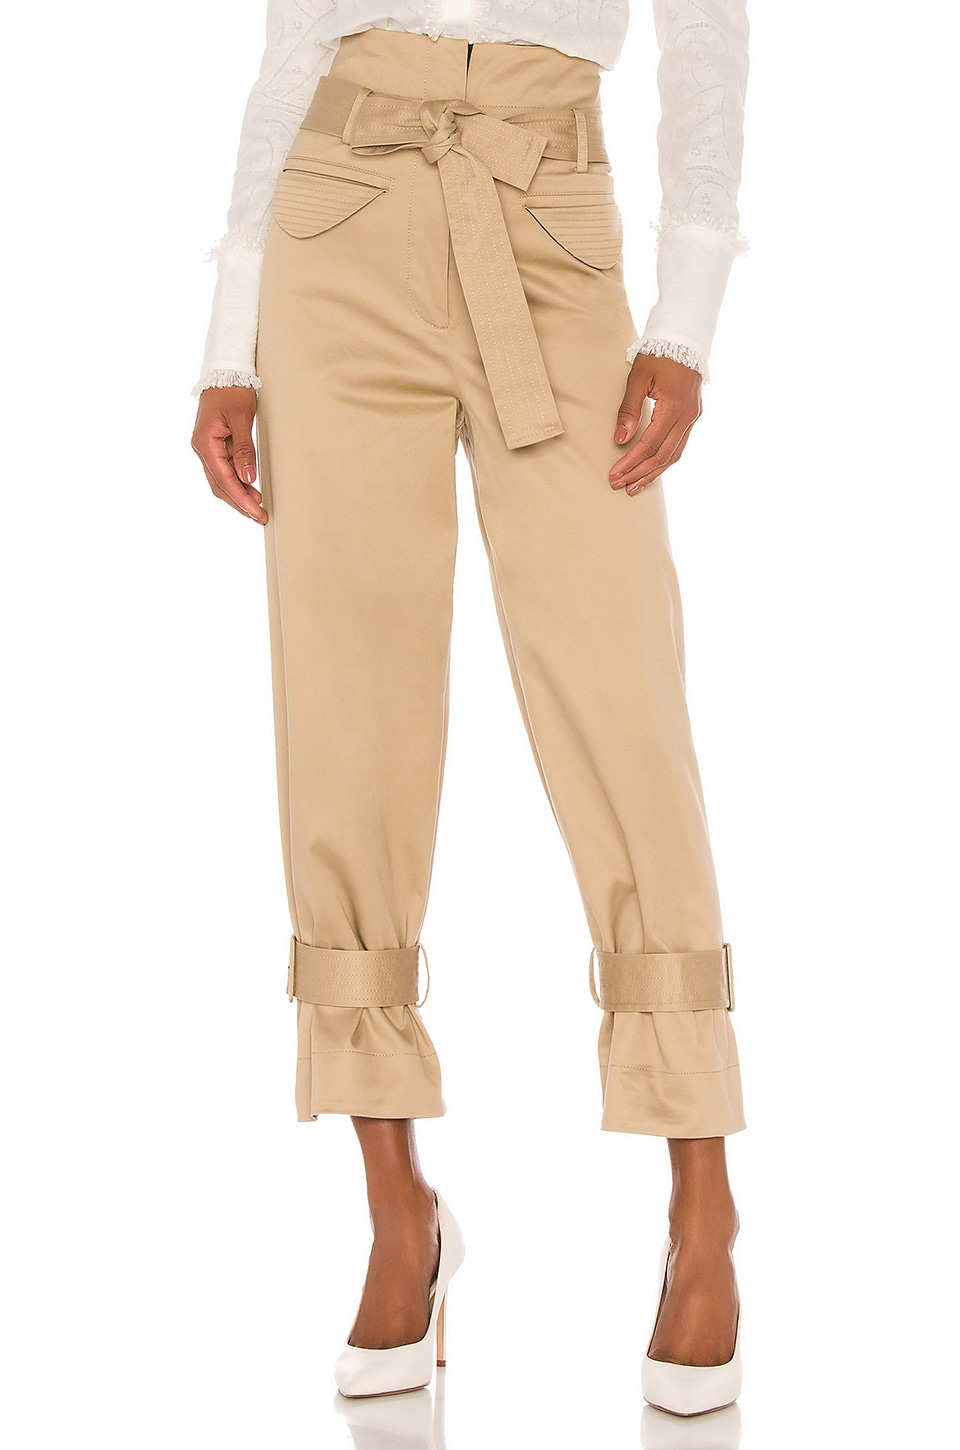 Alexis Vicente Pant in Tan